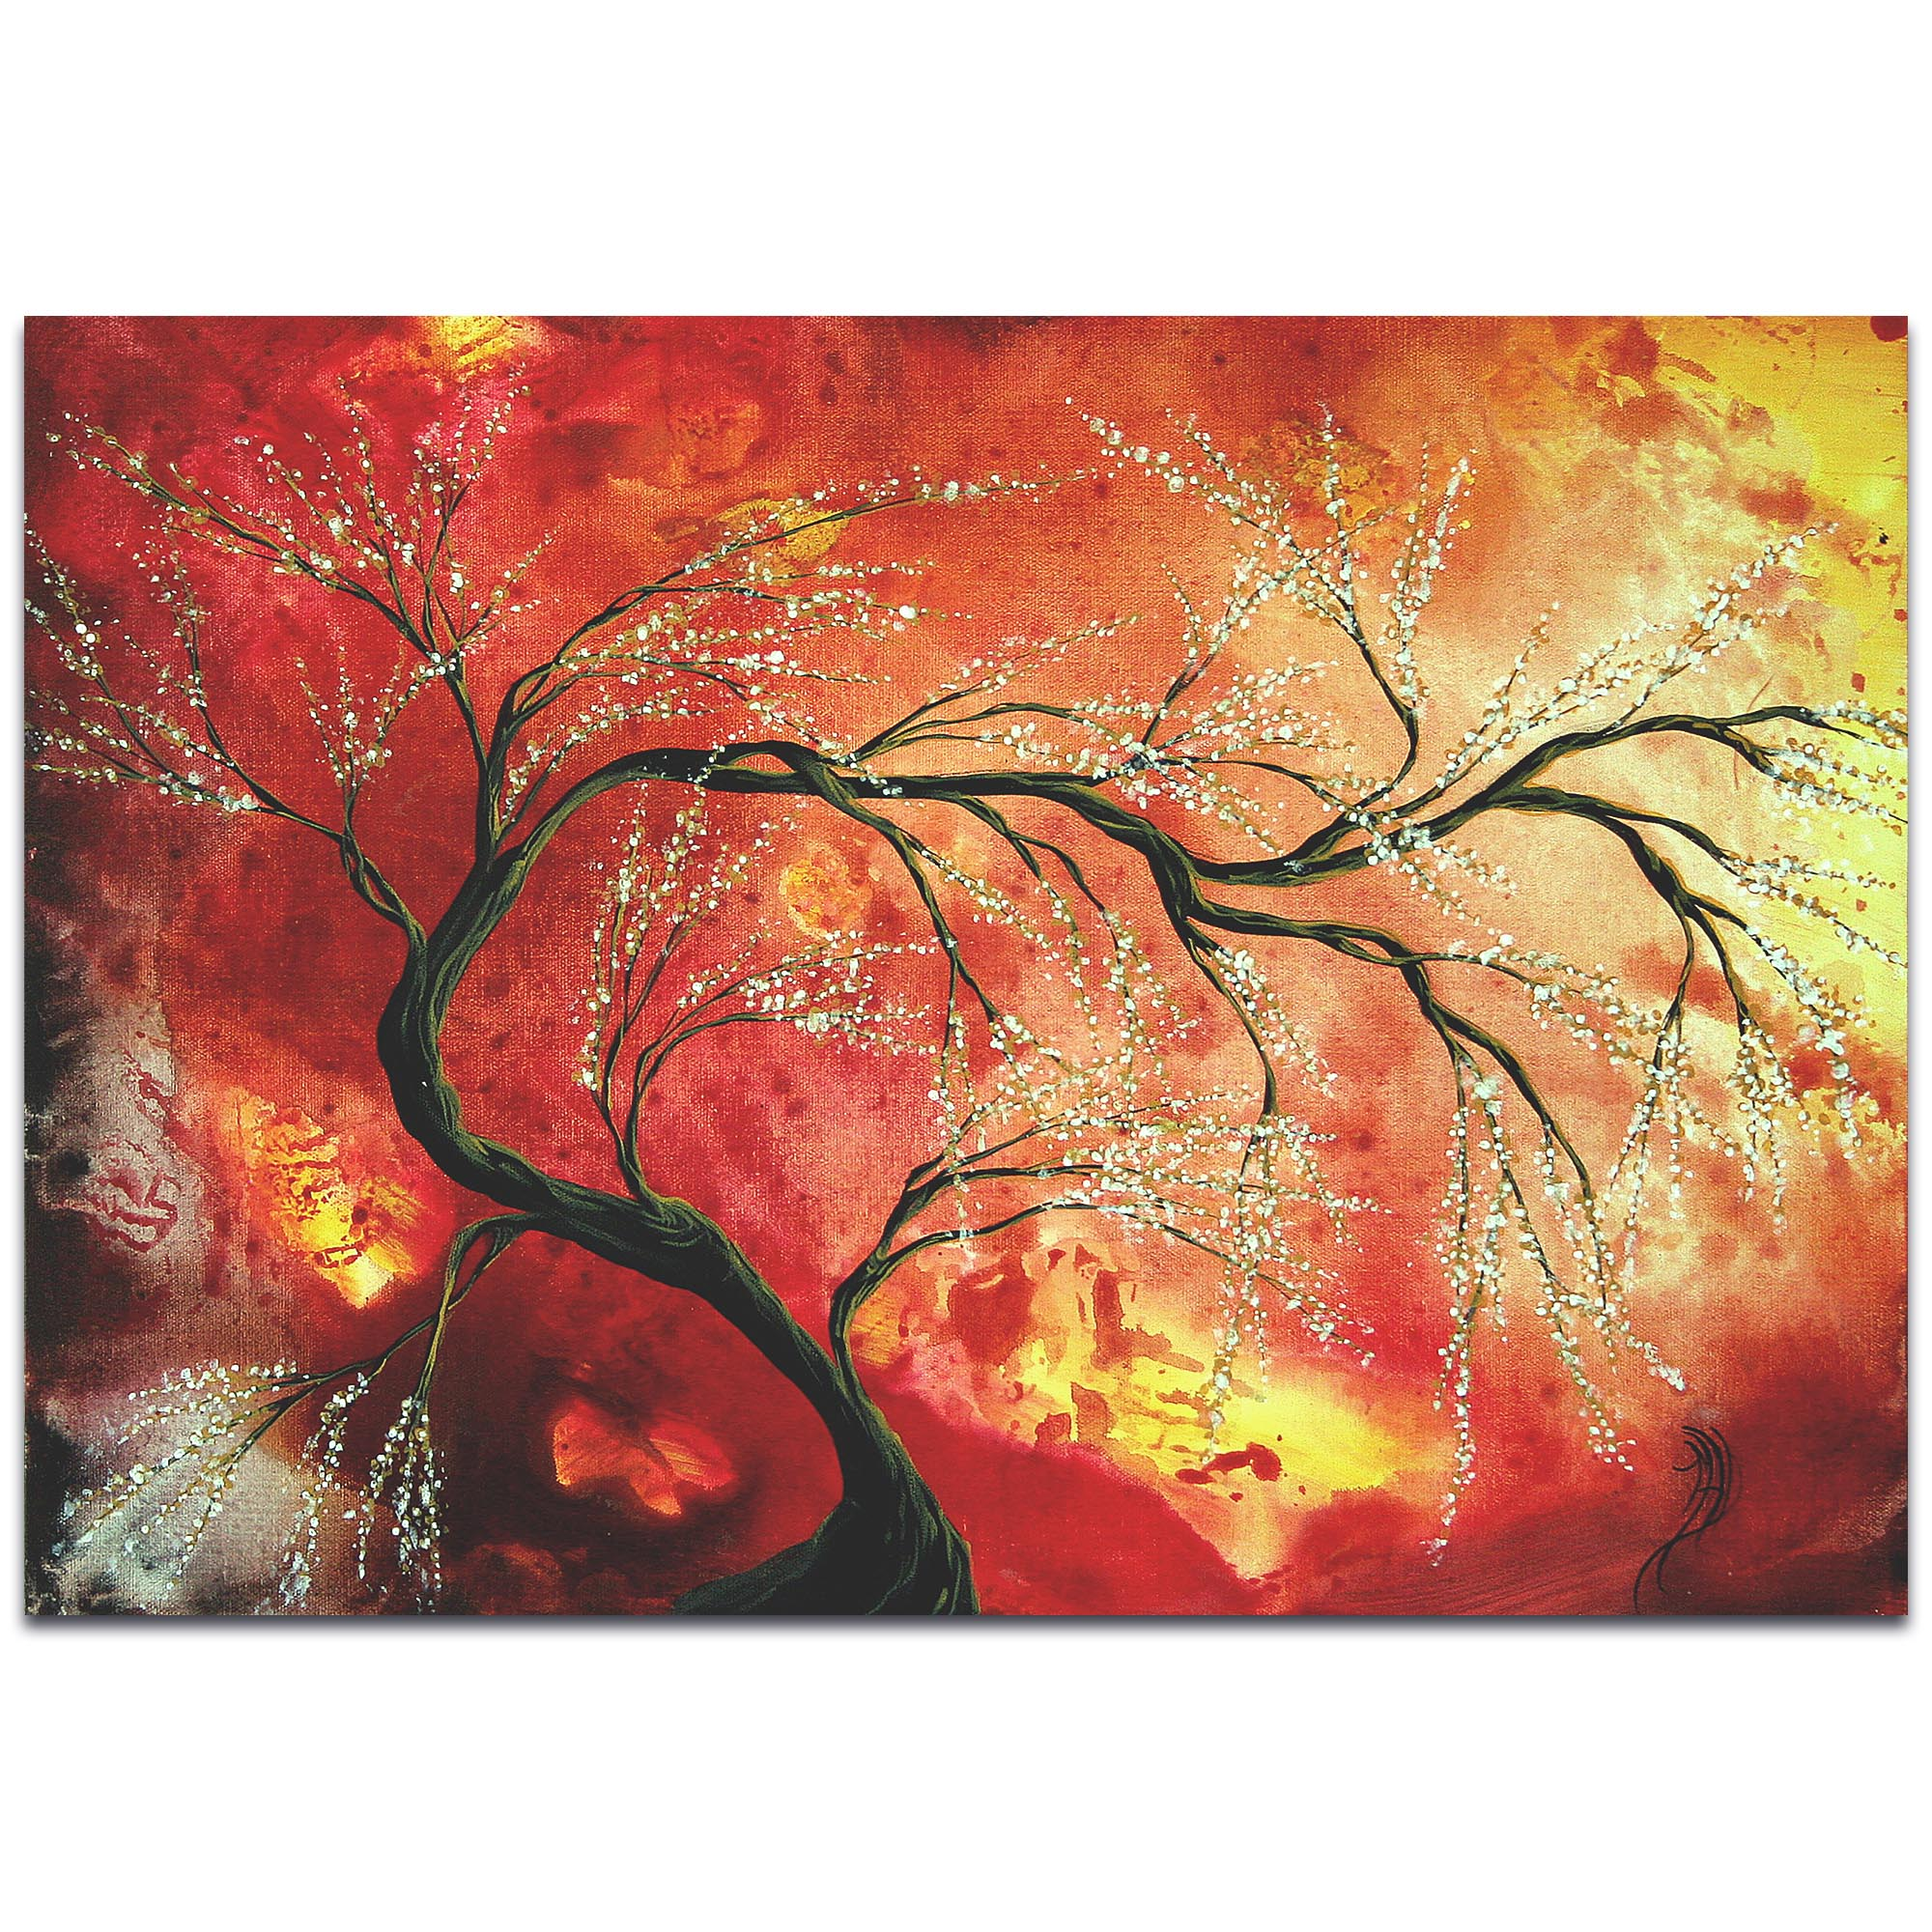 Landscape Painting 'Fresh Blossoms' - Abstract Tree Art on Metal or Acrylic